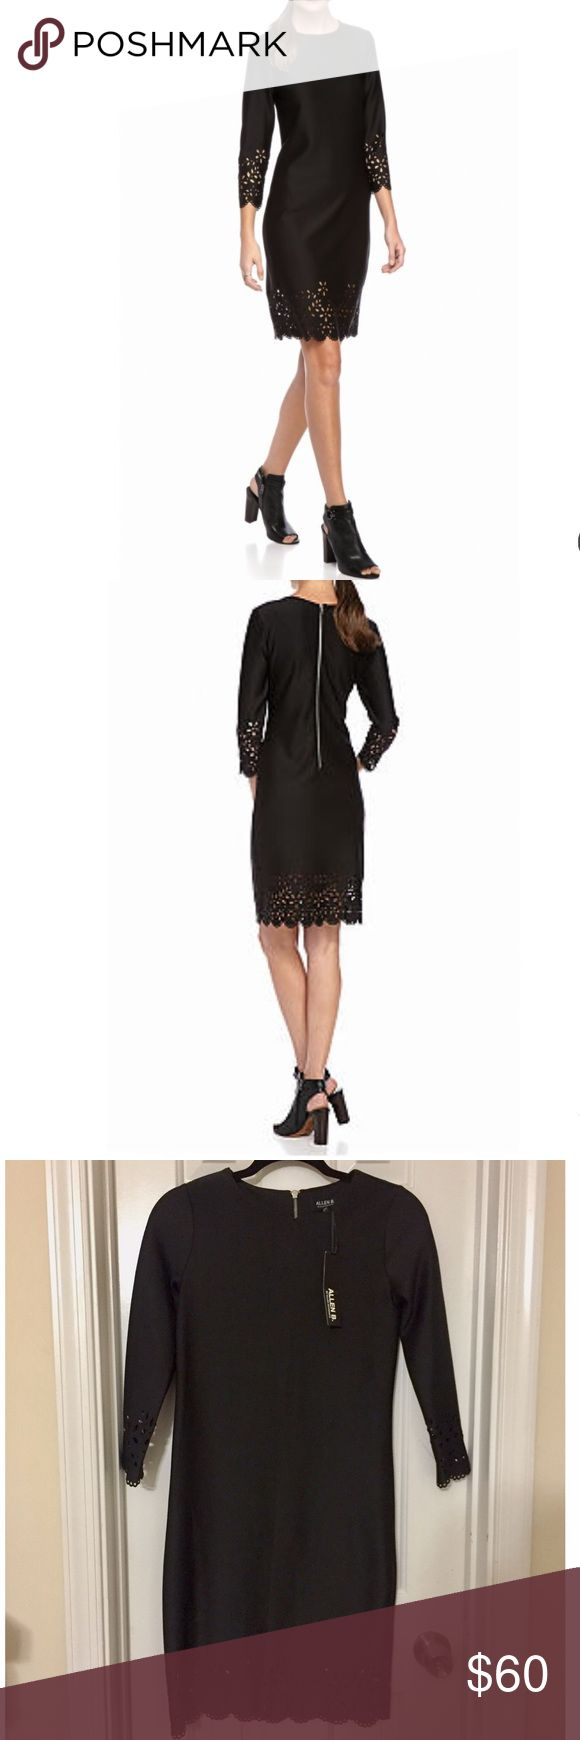 Allen B. Laser Cut Scuba Classic Evening Dress ABS Brand new with tags. SOLD OUT ONLINE! Very popular beautiful cocktail black dress by Allen B. By Allen Schwartz. Gorgeous laser cut details at the sleeve and hem. Size: XS. Original price: $99. Figure-skimming. Fit. Luxe scuba fabric. Approximately 38-inches in length. Zip closure. Boat neck. Three quarter set in sleeves. Unlined. Polyester and Spandex. ABS Allen Schwartz Dresses Midi